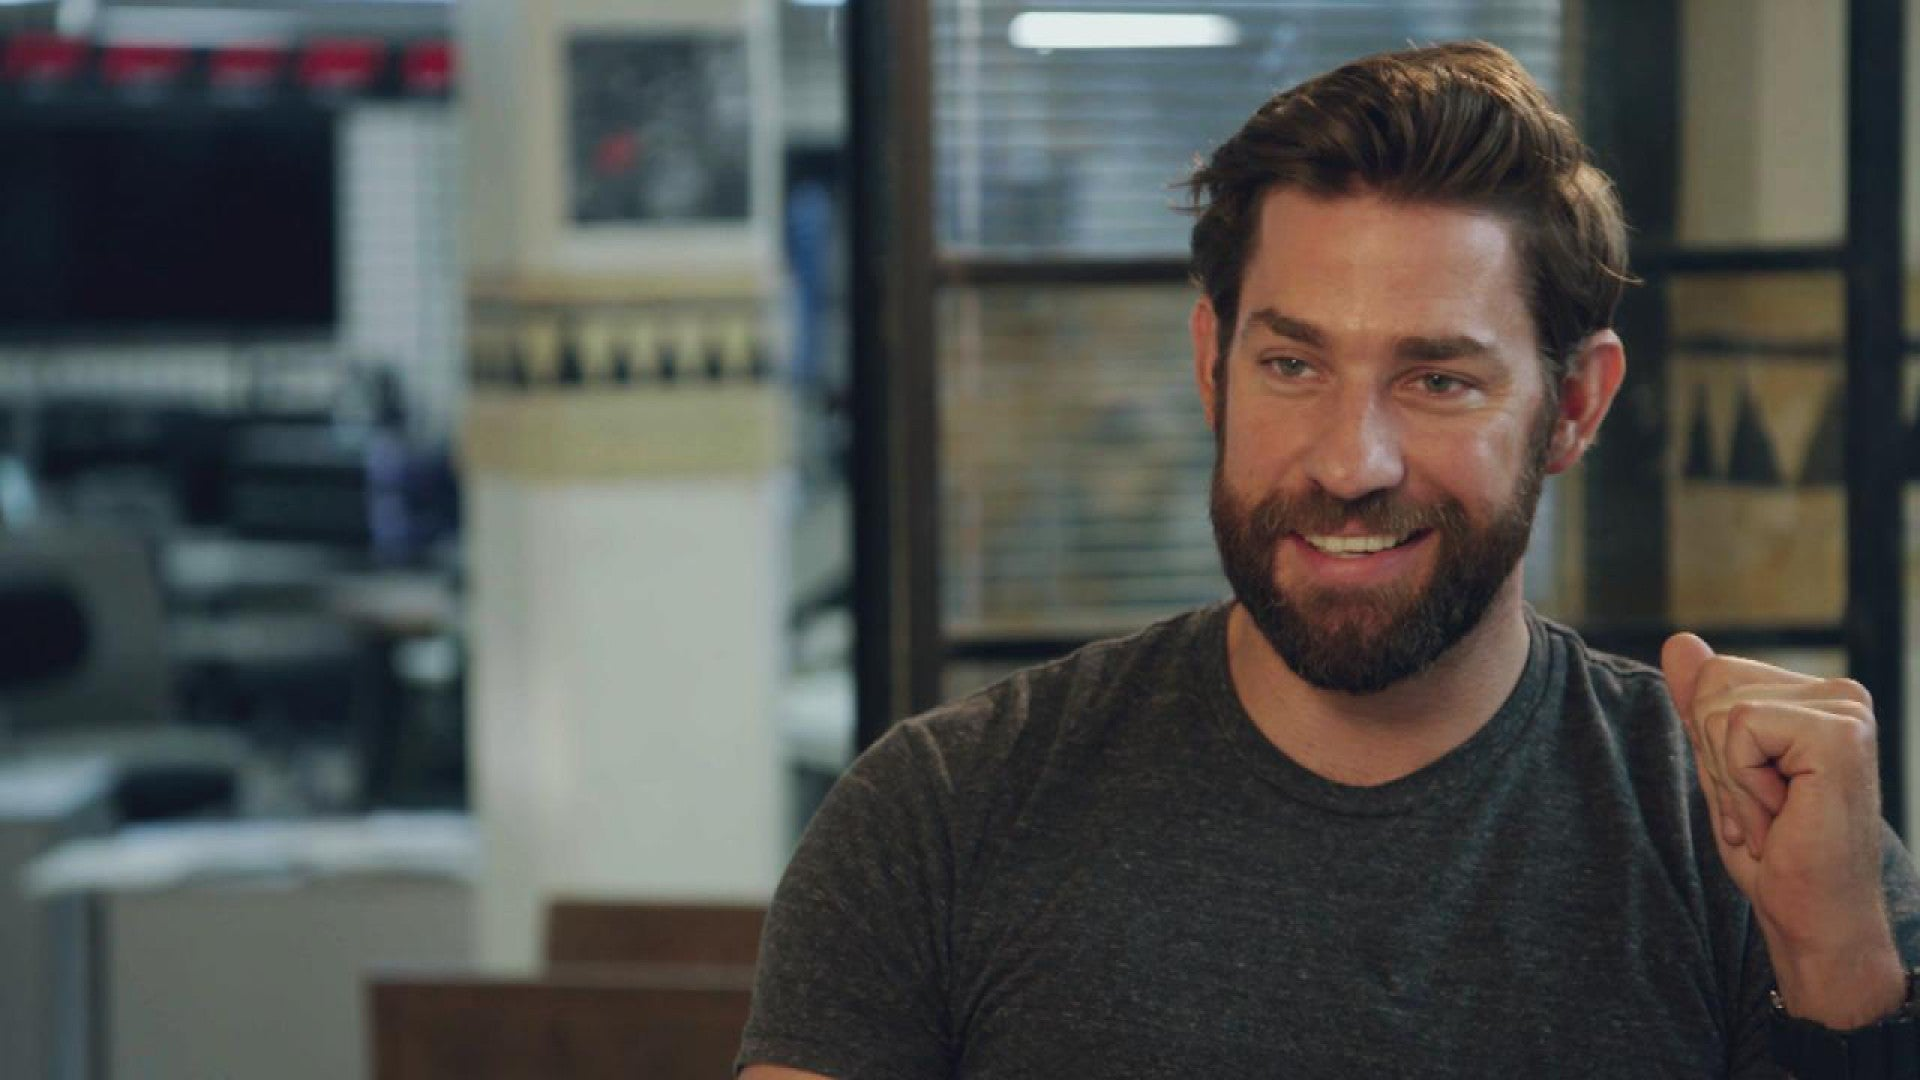 John Krasinski Plays the Innocent Act When it Comes to Making Political Propaganda (Again)